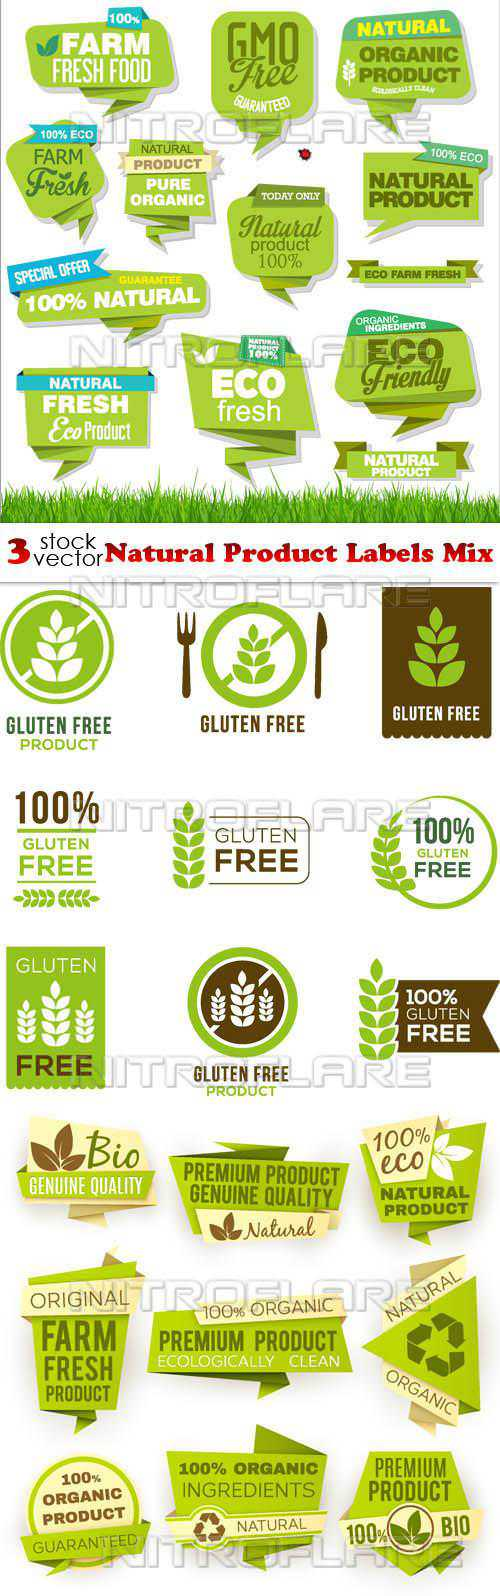 Natural Product Labels Mix